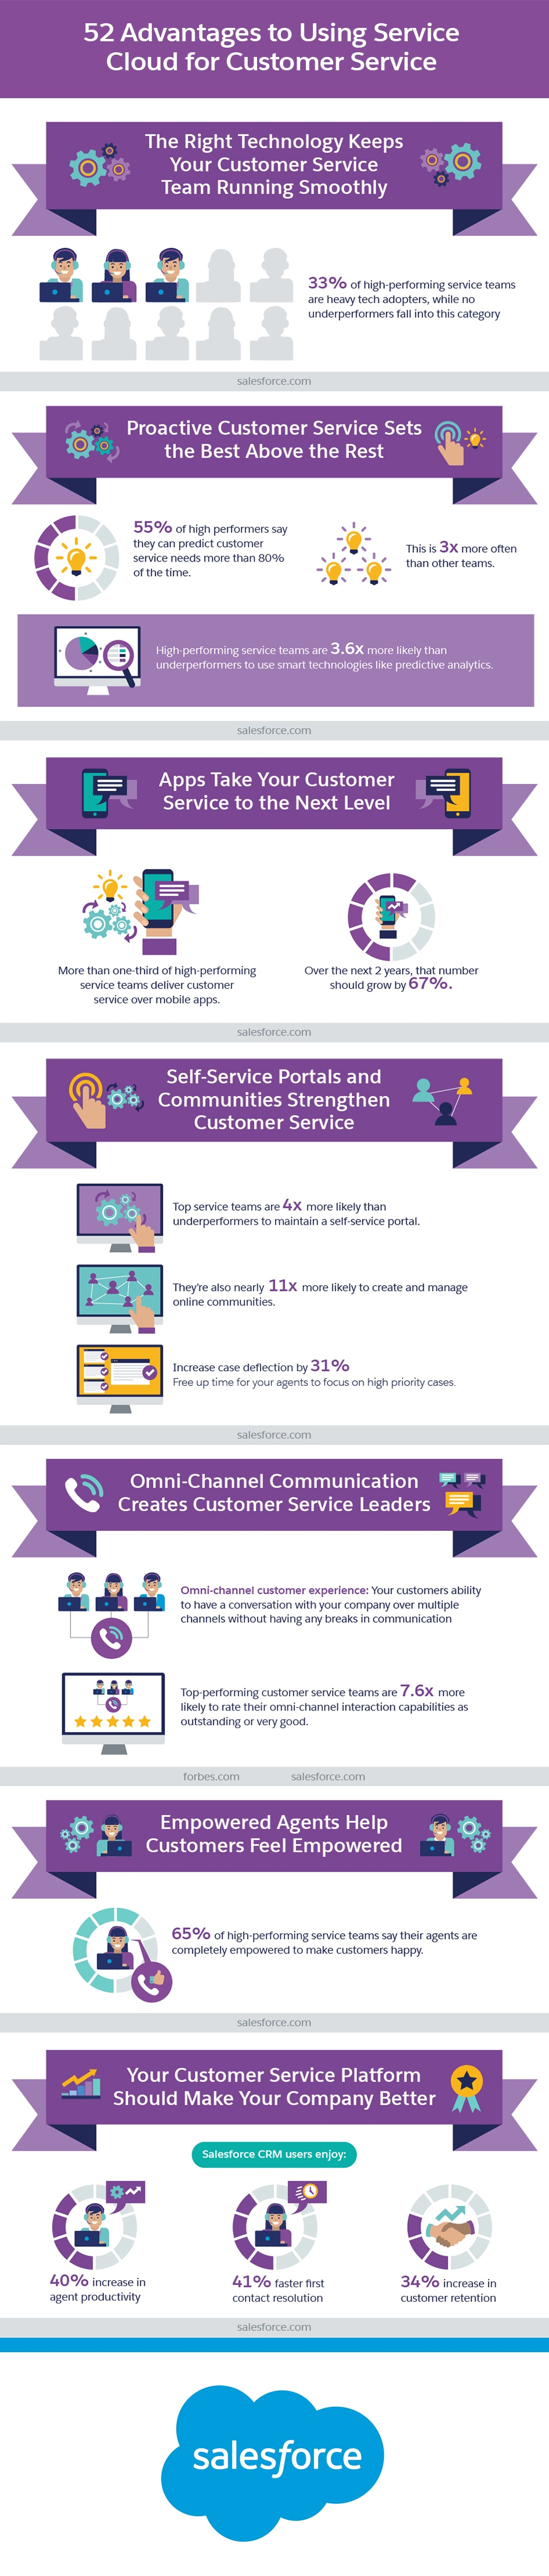 52 Advantages to Using Service Cloud for Customer Service Infographic